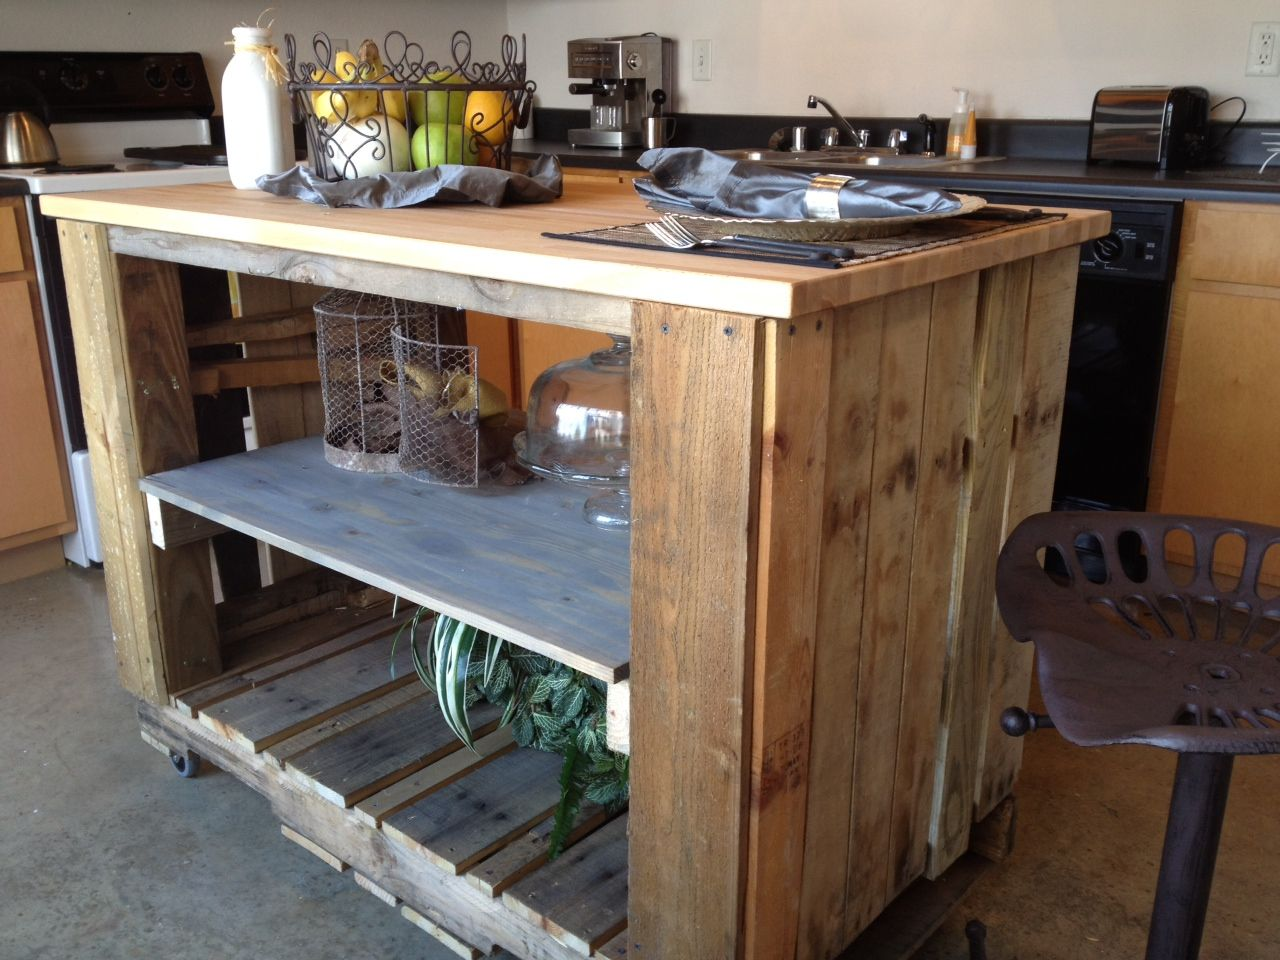 40 fantastic ways of how to reuse wooden pallets